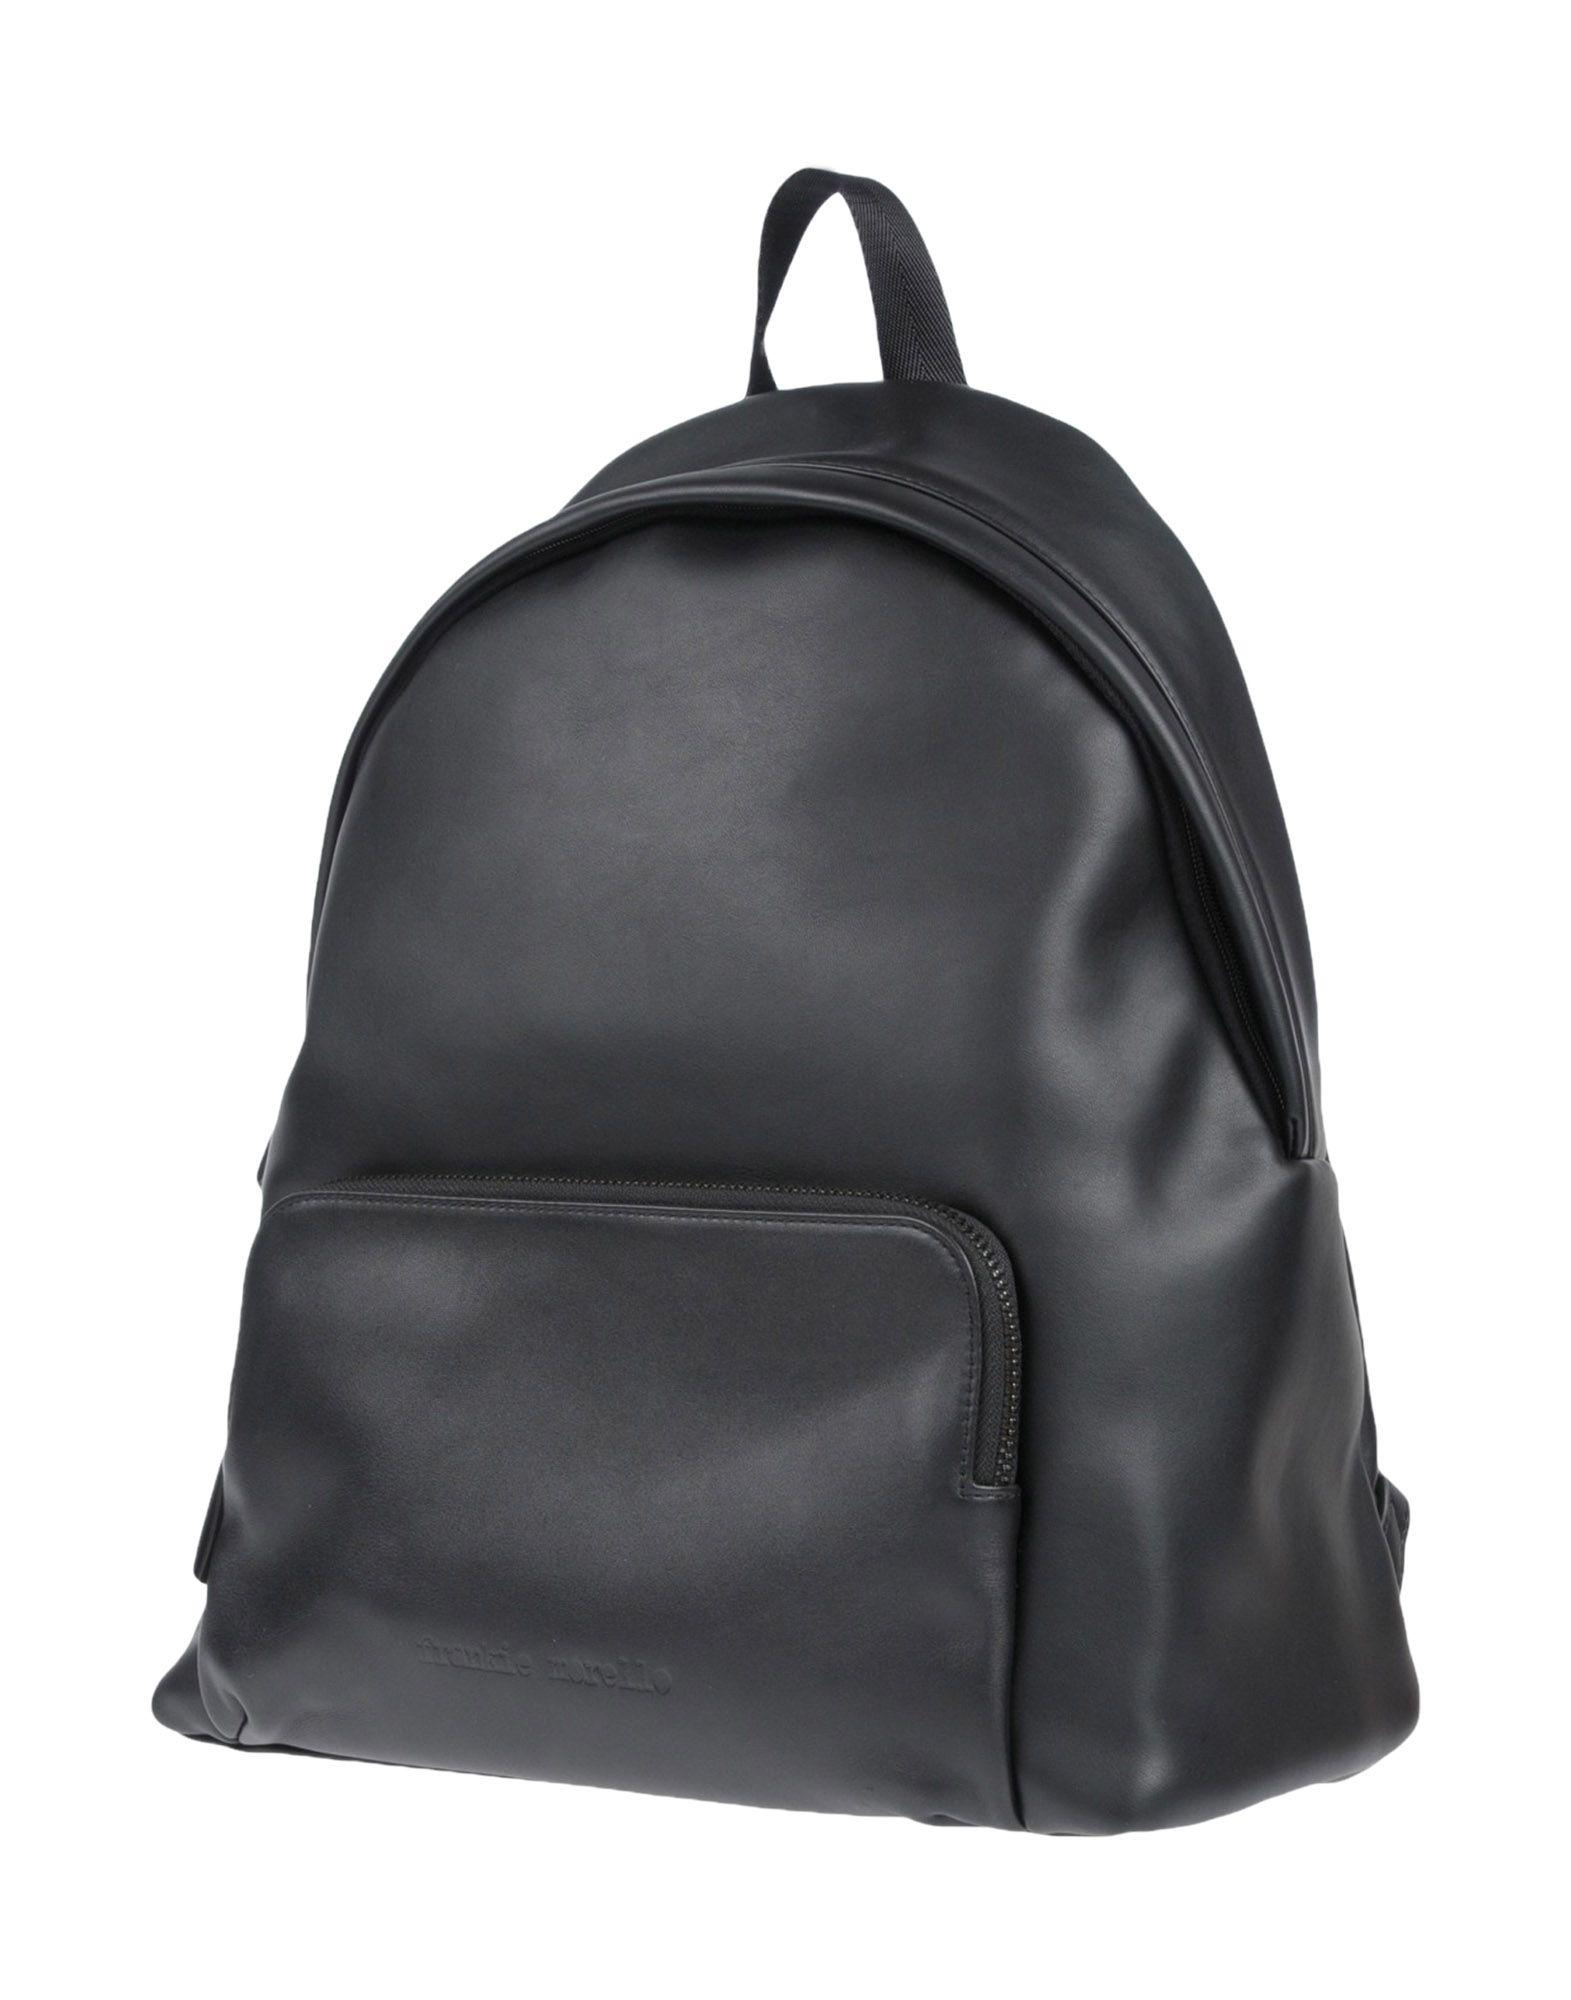 Frankie Morello Backpacks & Fanny Packs In Black